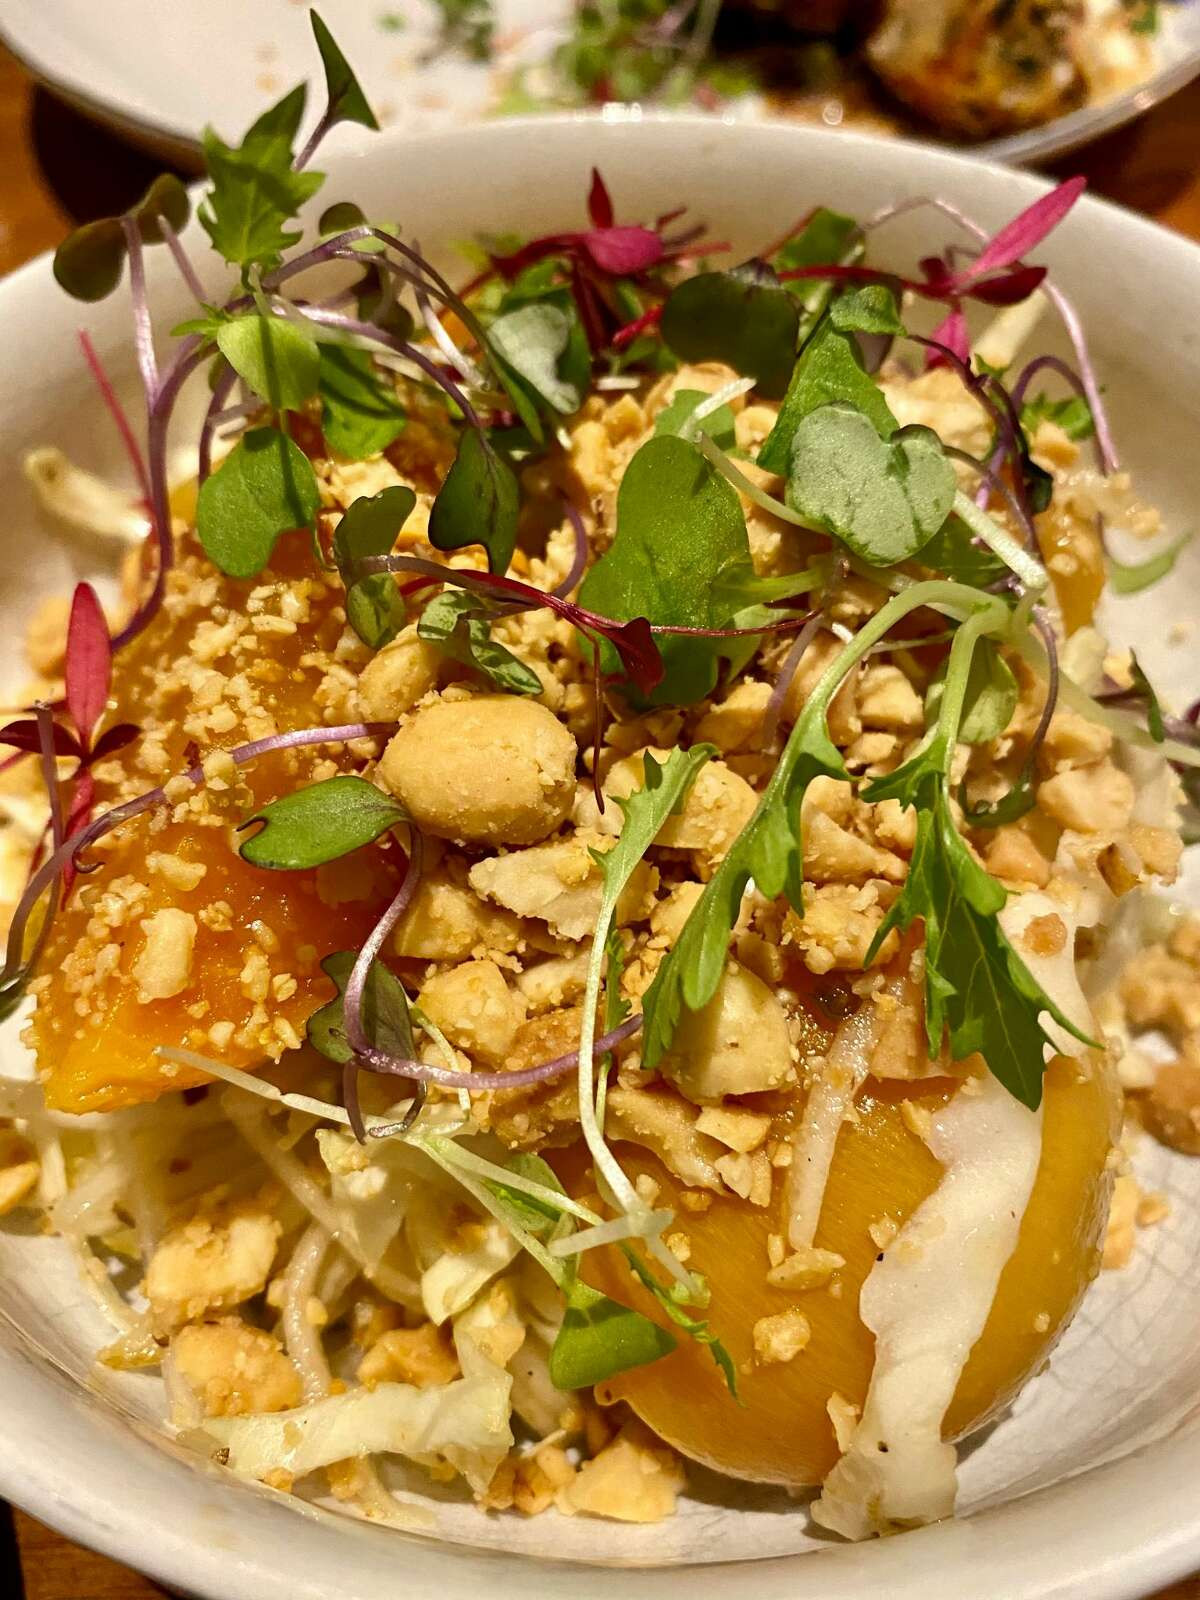 Golden beet salad nods to a Thai preparation with peanuts, herbs and brown-sugar vinaigrette at Local 111 in Philmont. (Susie Davidson Powell for the Times Union.)